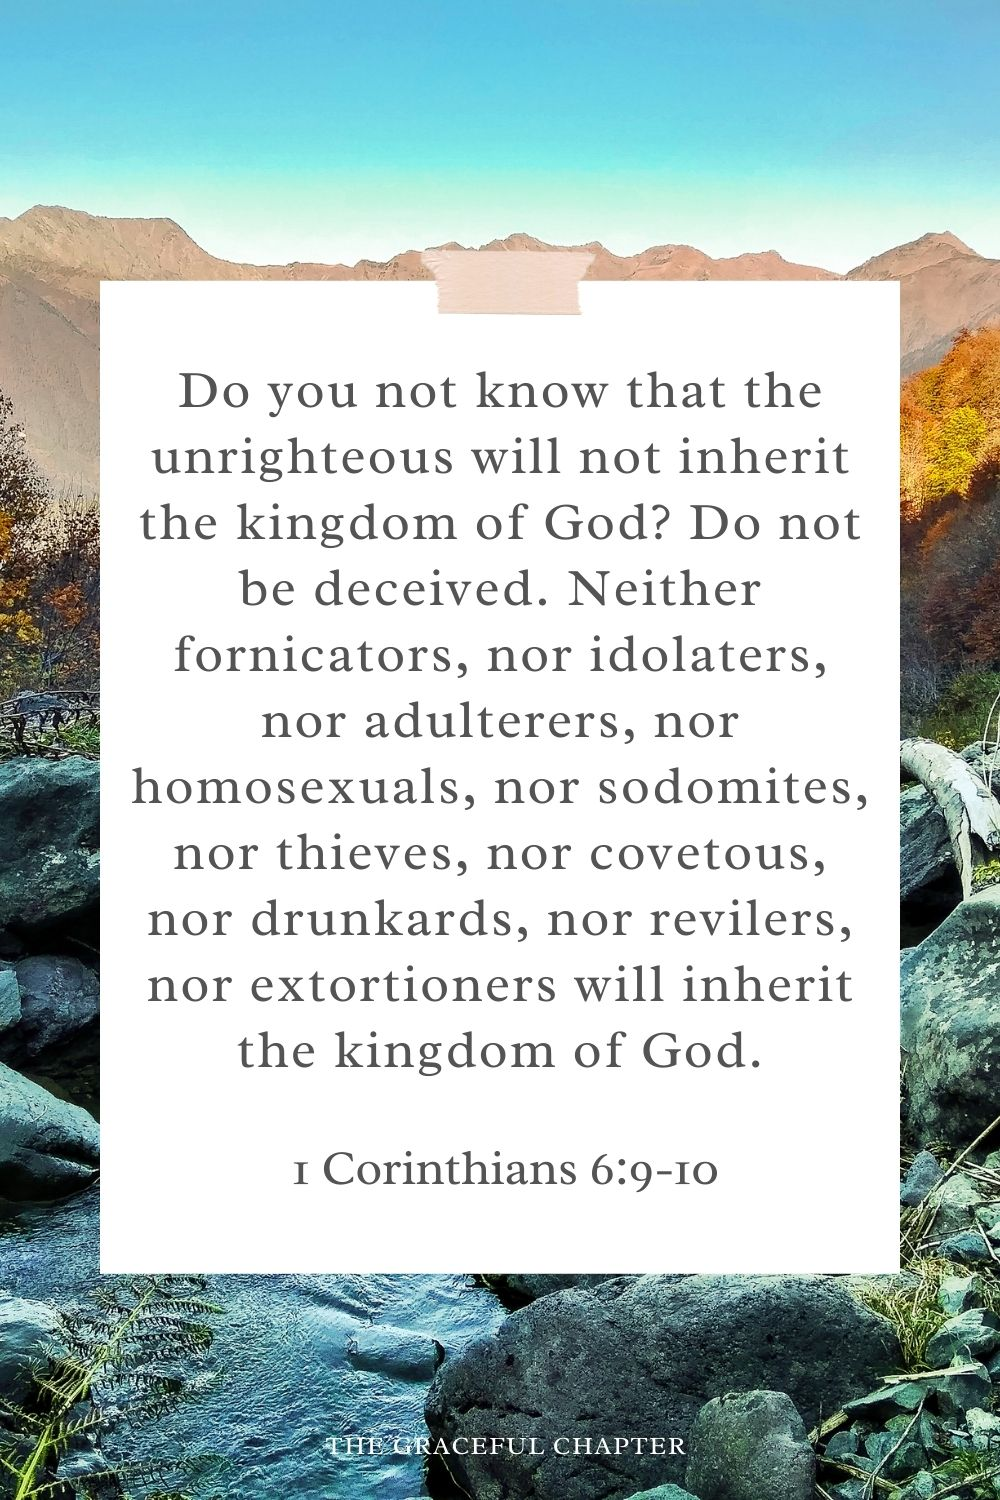 Do you not know that the unrighteous will not inherit the kingdom of God? Do not be deceived. Neither fornicators, nor idolaters, nor adulterers, nor homosexuals, nor sodomites, nor thieves, nor covetous, nor drunkards, nor revilers, nor extortioners will inherit the kingdom of God. 1 Corinthians 6:9-10